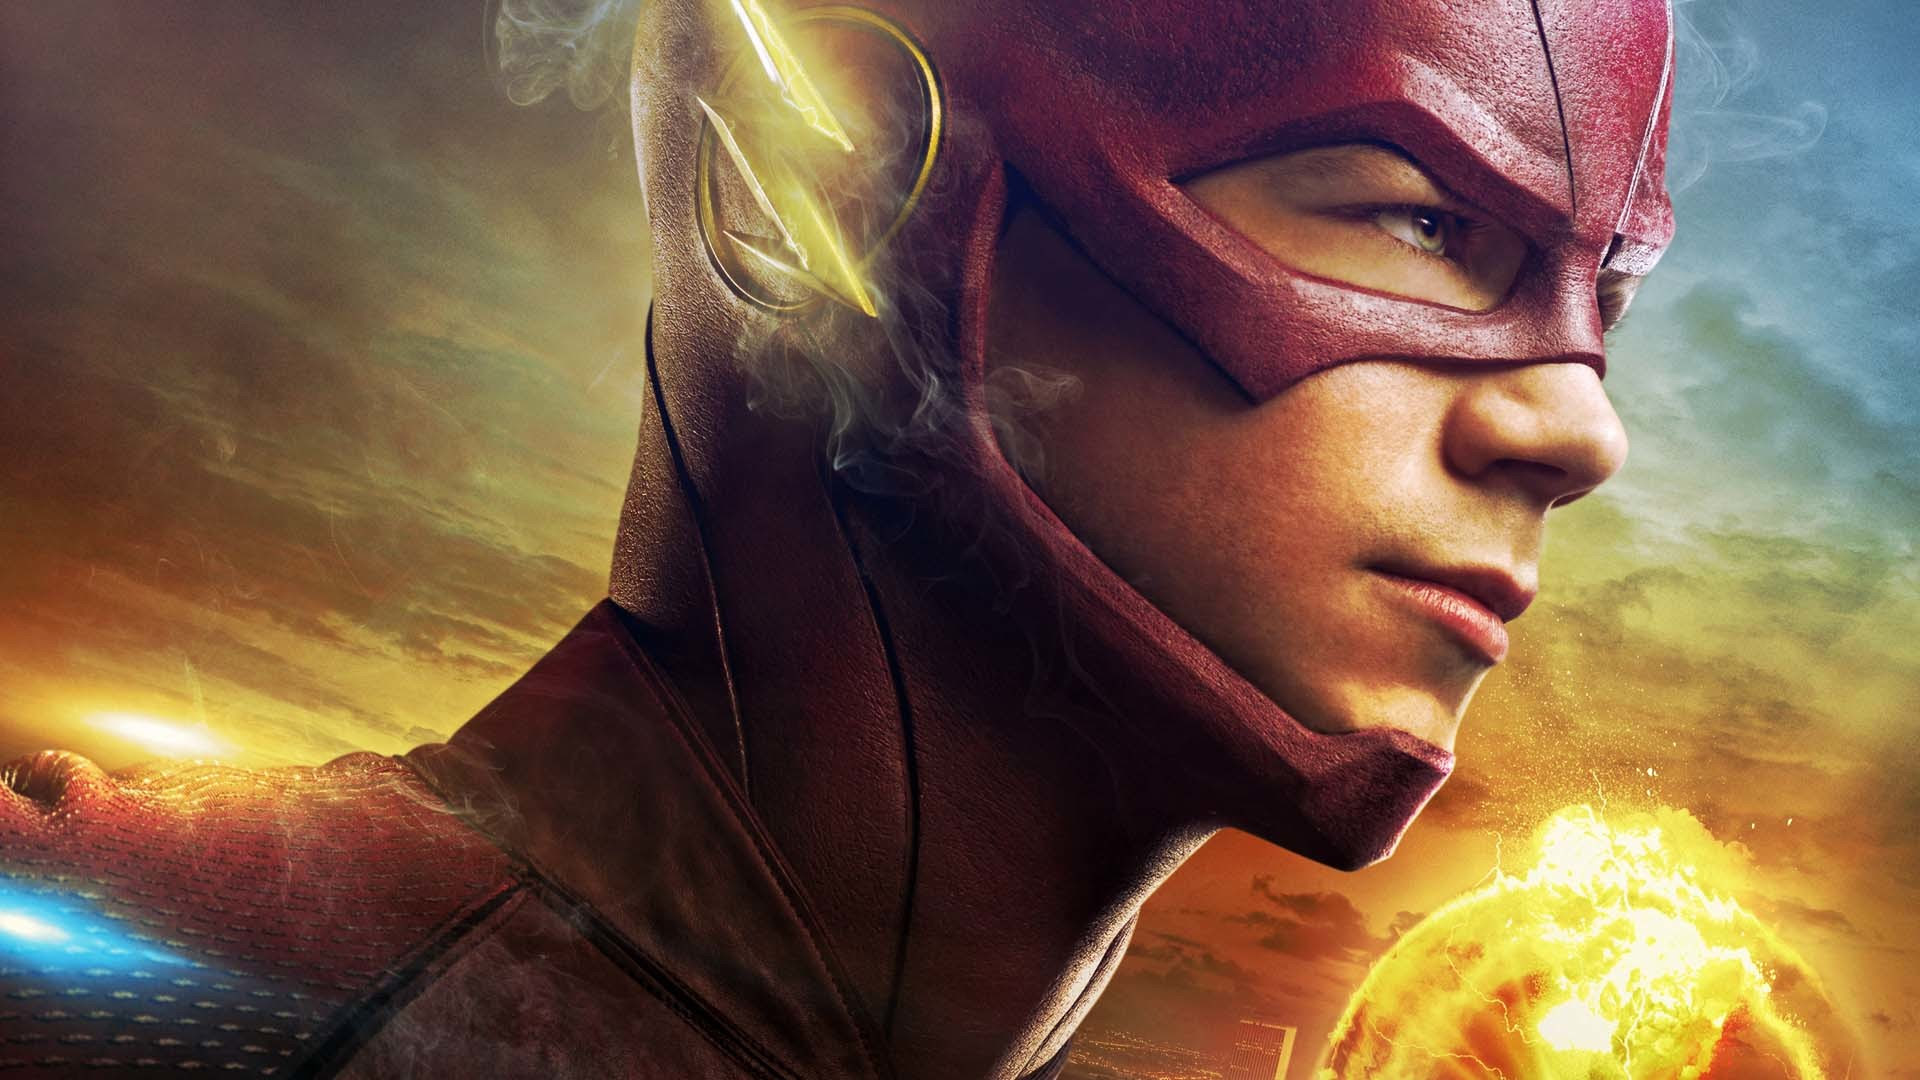 The Flash Cw Wallpaper Hd 79 Images